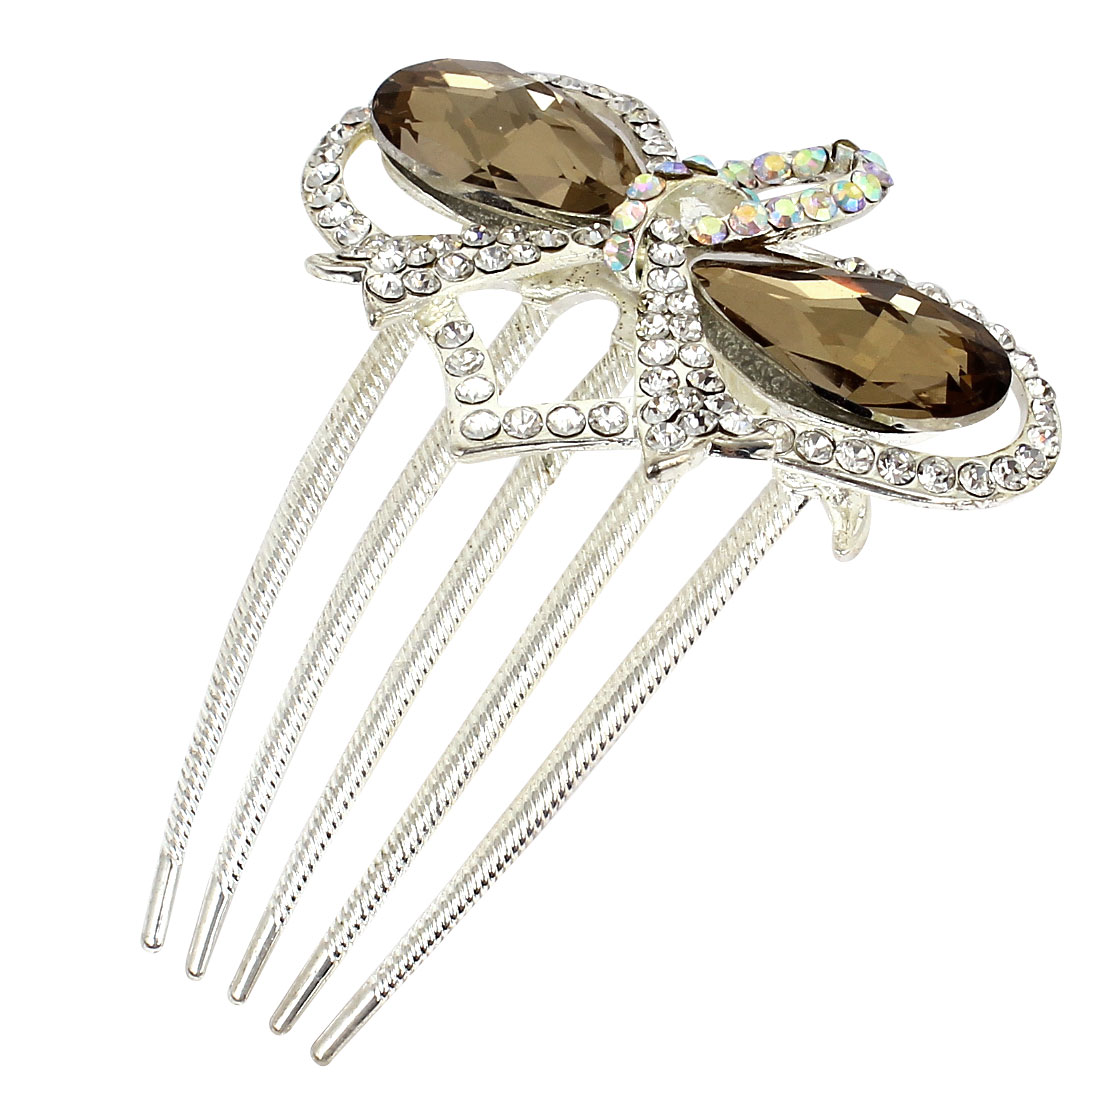 Wedding Bowknot Shape Plastic Crystal Decor Hair Comb Slide Clip Brown